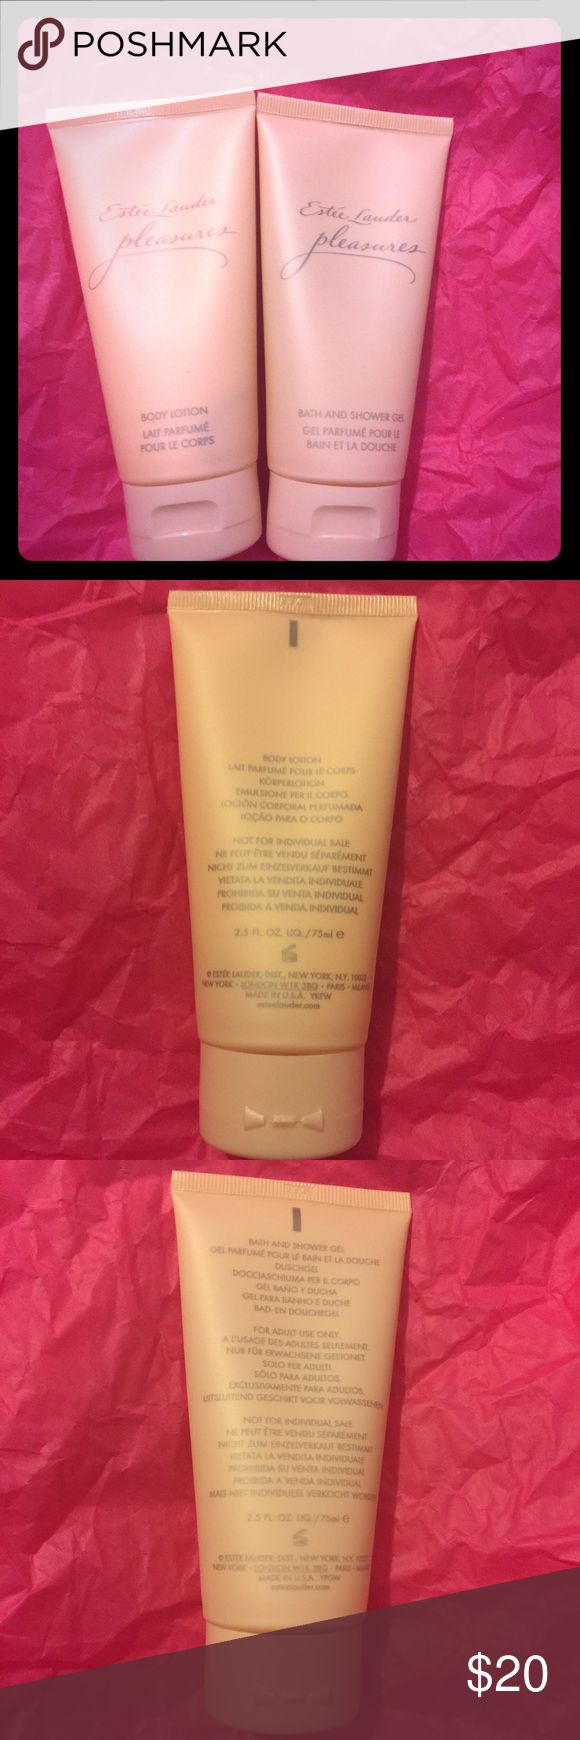 Estée Lauder Pleasures Shower & Lotion Set -NEW Estée Lauder Pleasures Bath & Shower Gel and Lotion Set. New; never used. Bundle and save! I accept reasonable offers. From a smoke free 💨, pet friendly 🐶 🐱 🐦 home 🏡. Estee Lauder Other